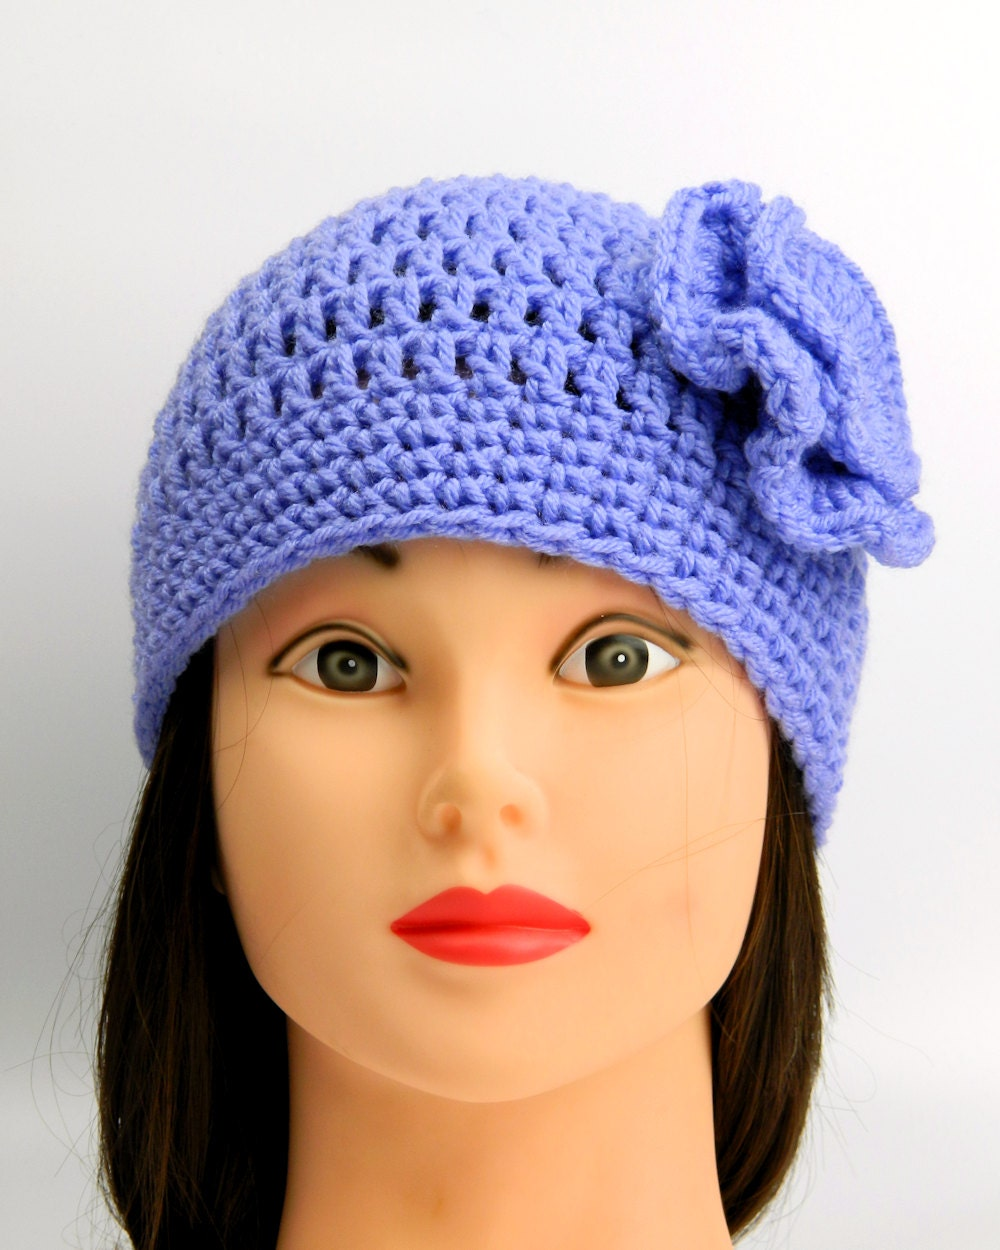 Crochet hat Adult hat Winter Hat Womens beanie Cute winter